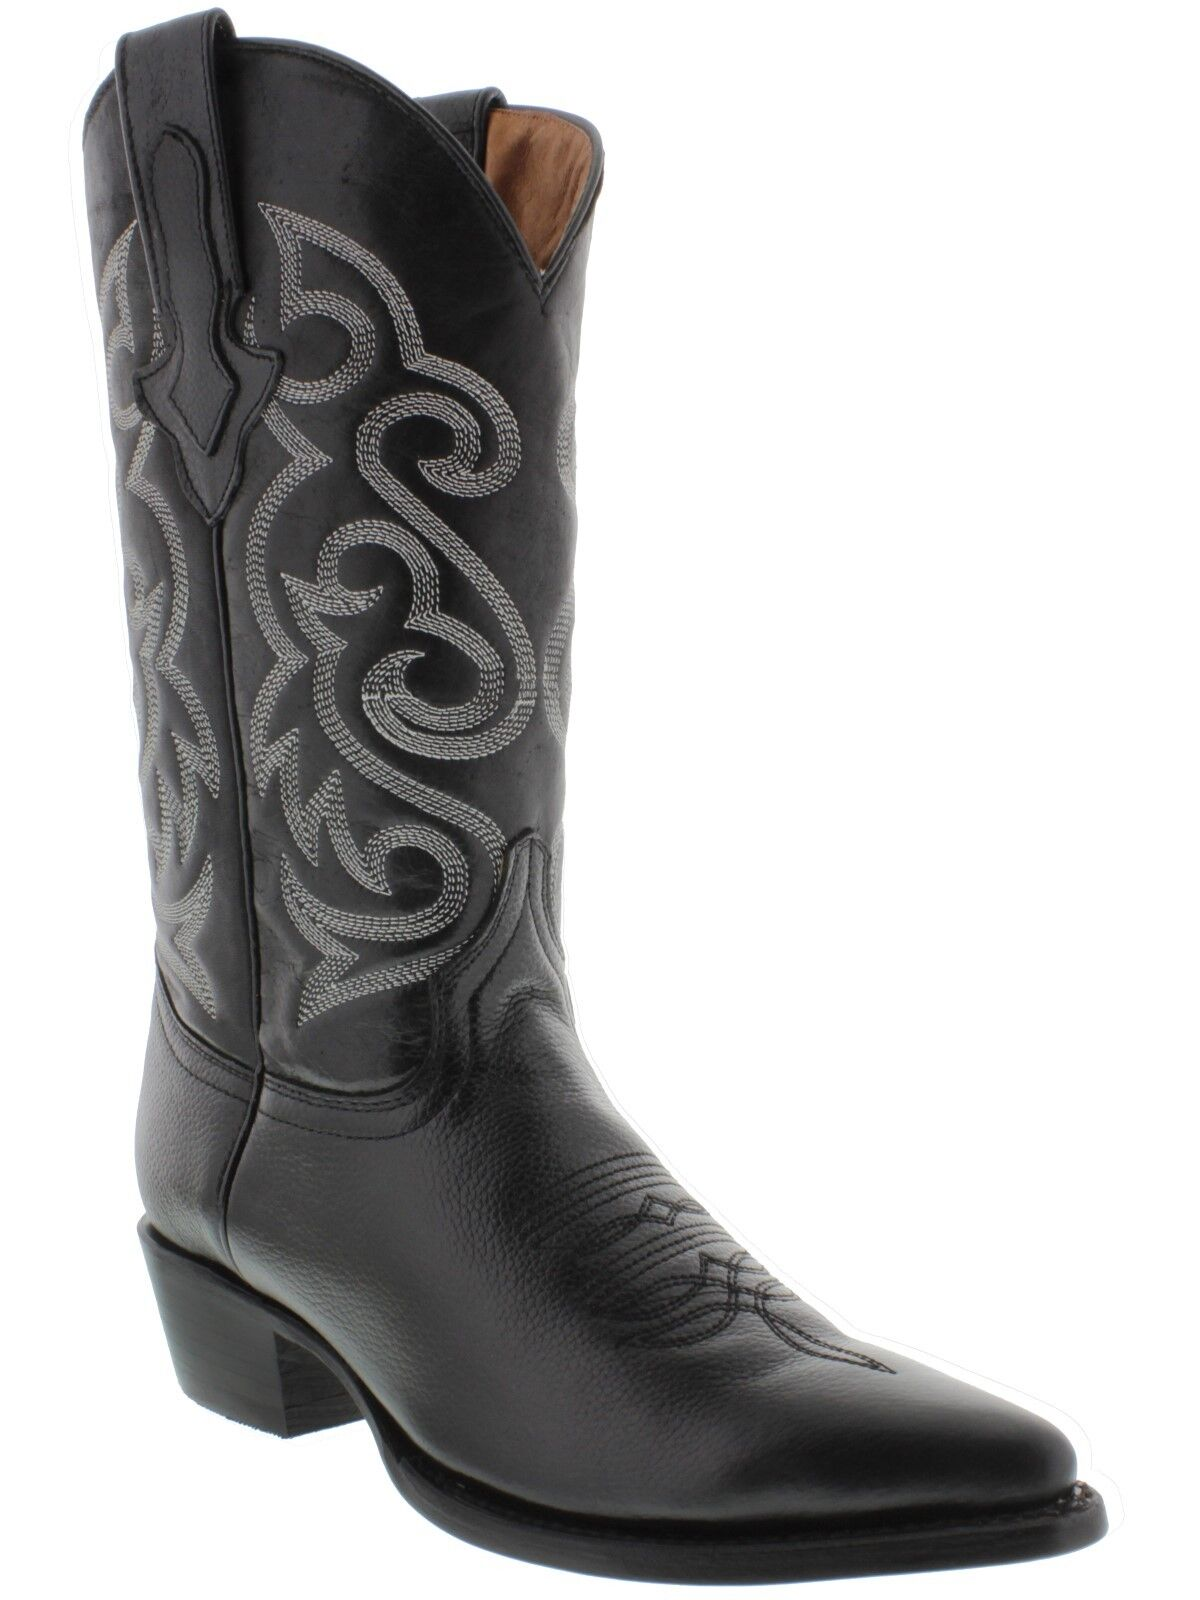 Mens black classic plain leather western cowboy leather boots rodeo j toe riding